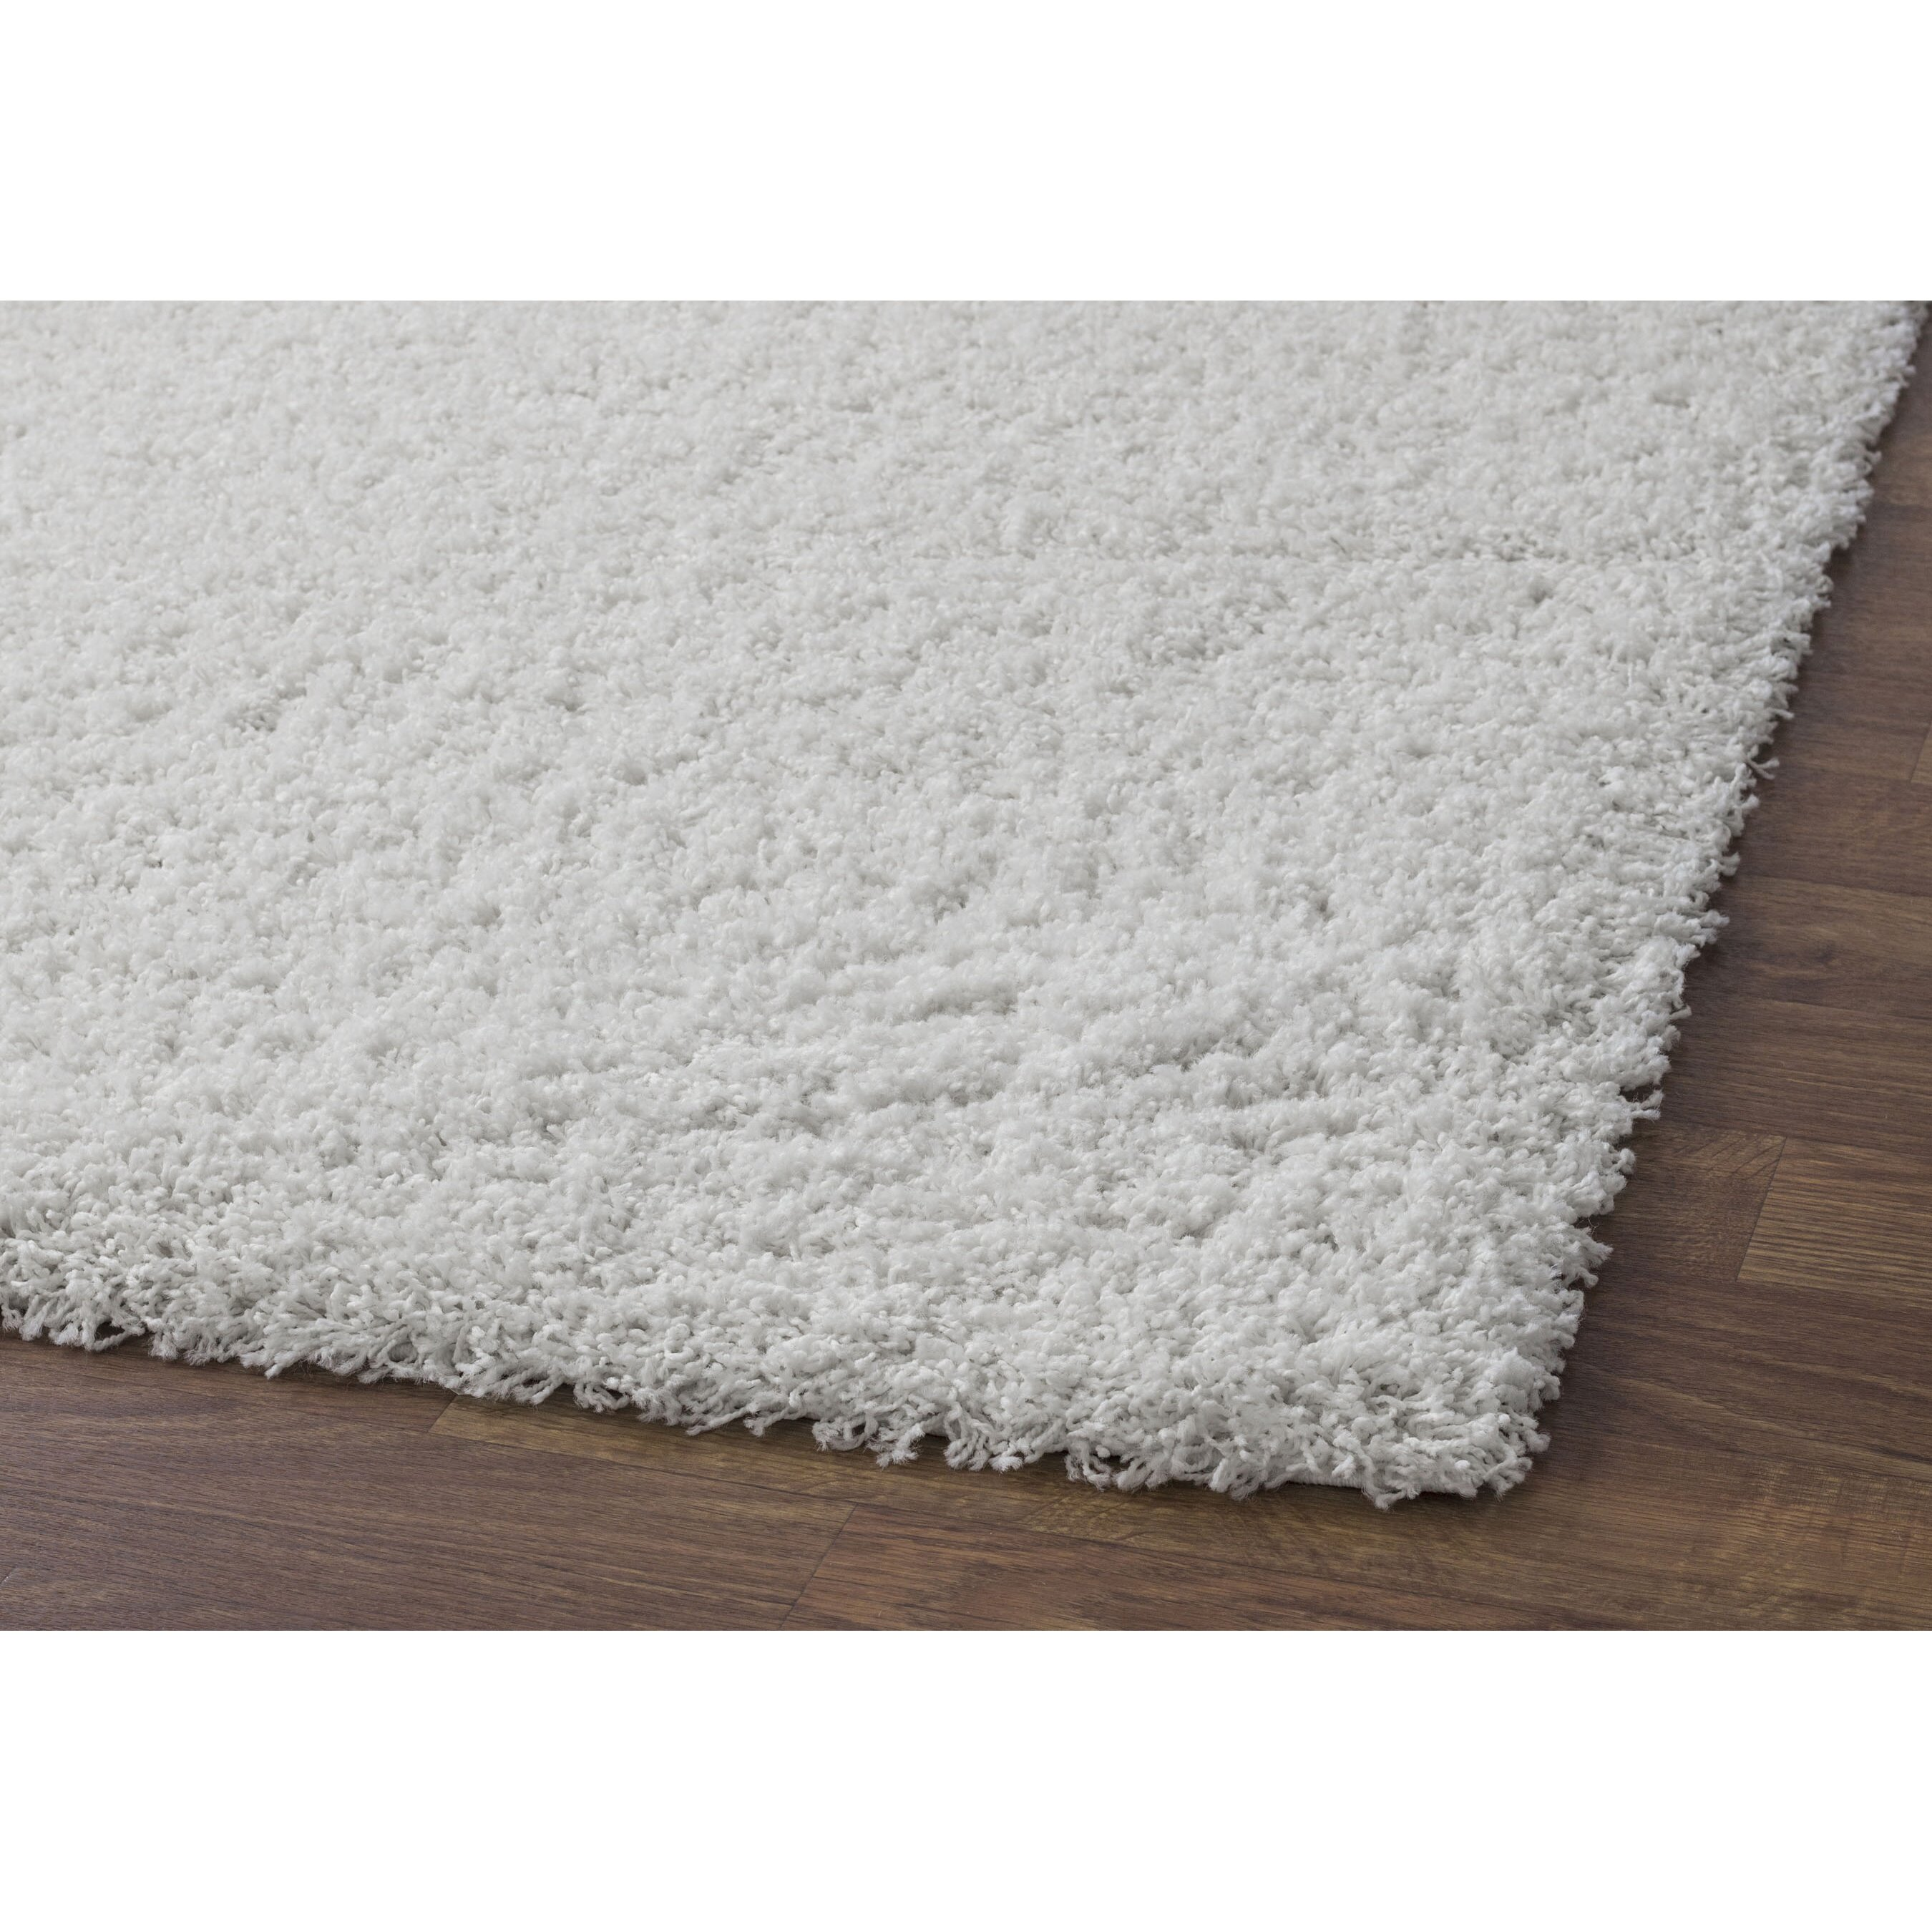 Super area rugs white area rug reviews wayfair for White area rug